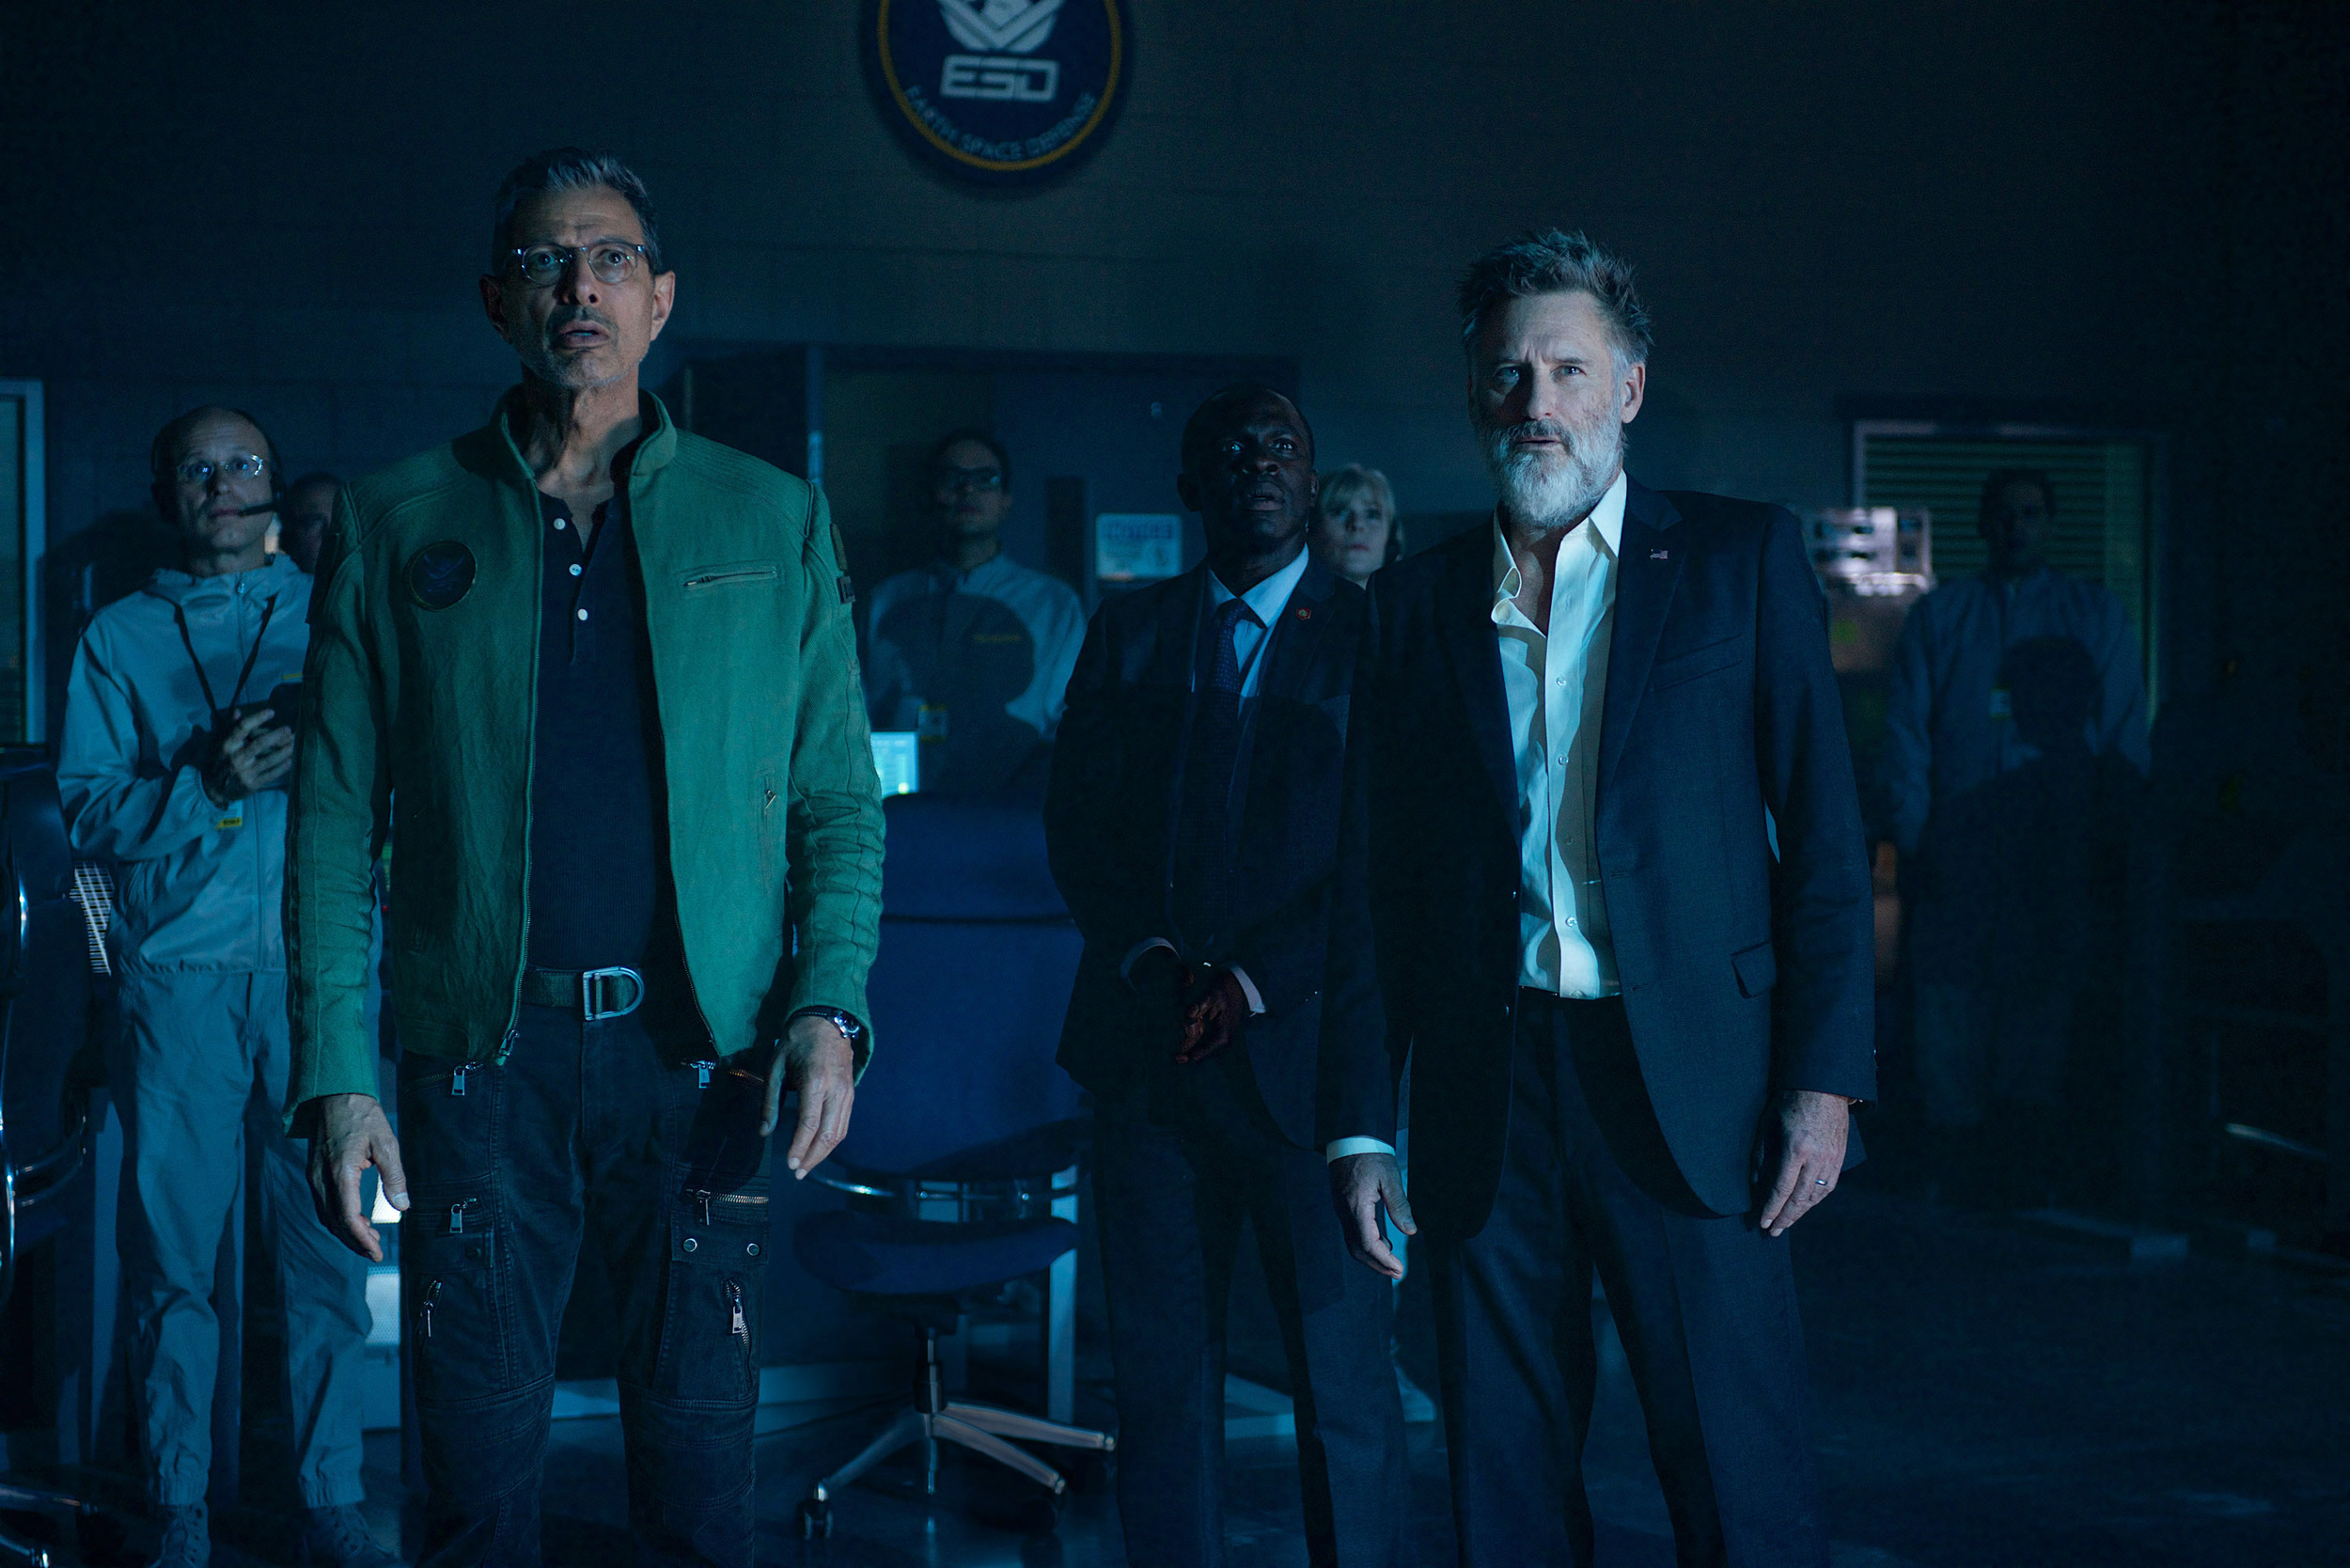 Jeff Goldblum and Bill Pullman showed up for the 20-years-later sequel to  Independence Day.